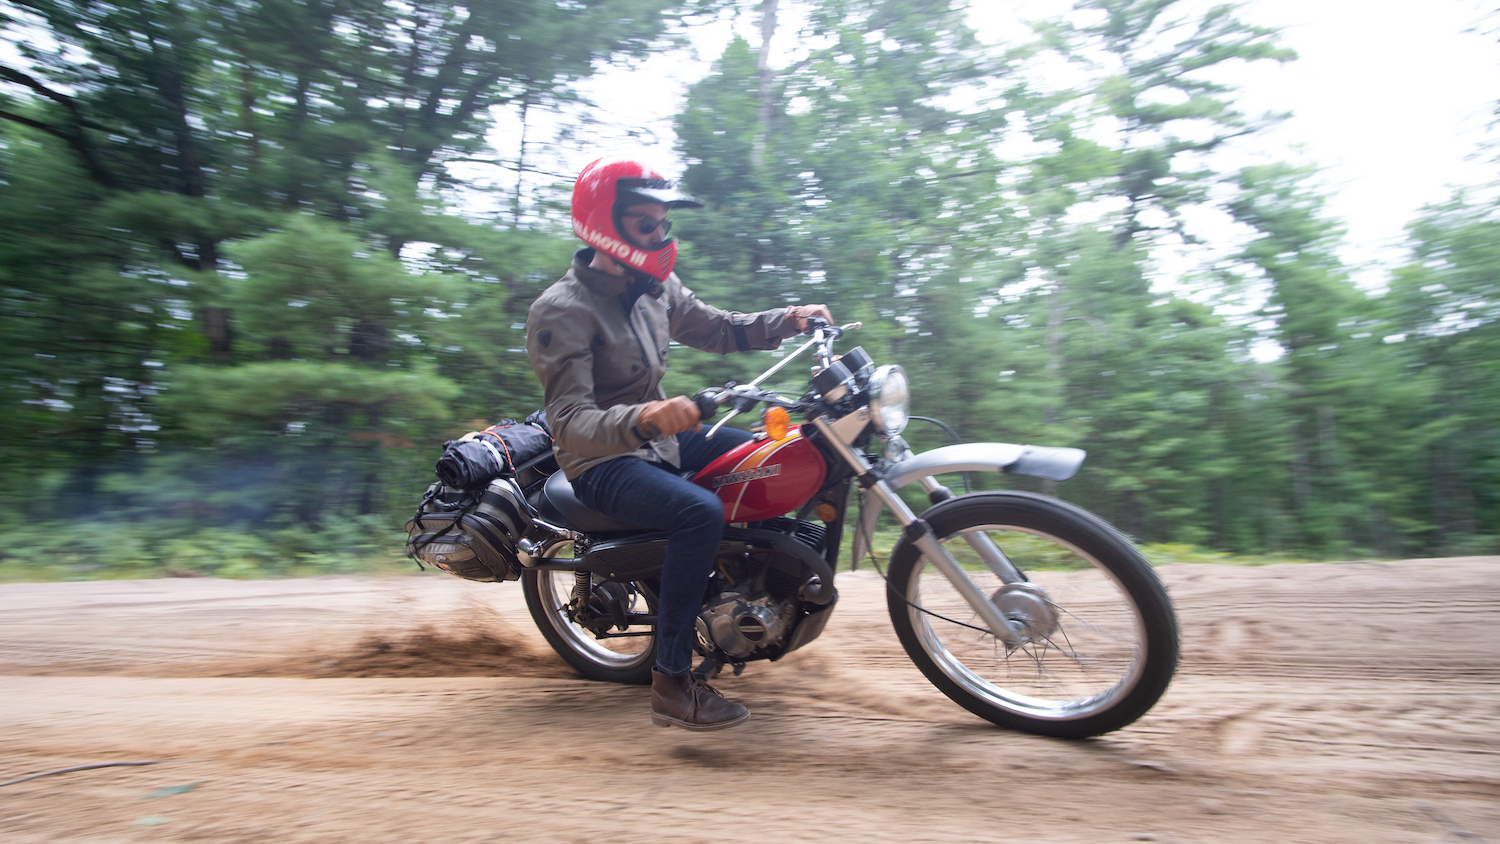 A 42-year-old Kawasaki is the best way to escape real life